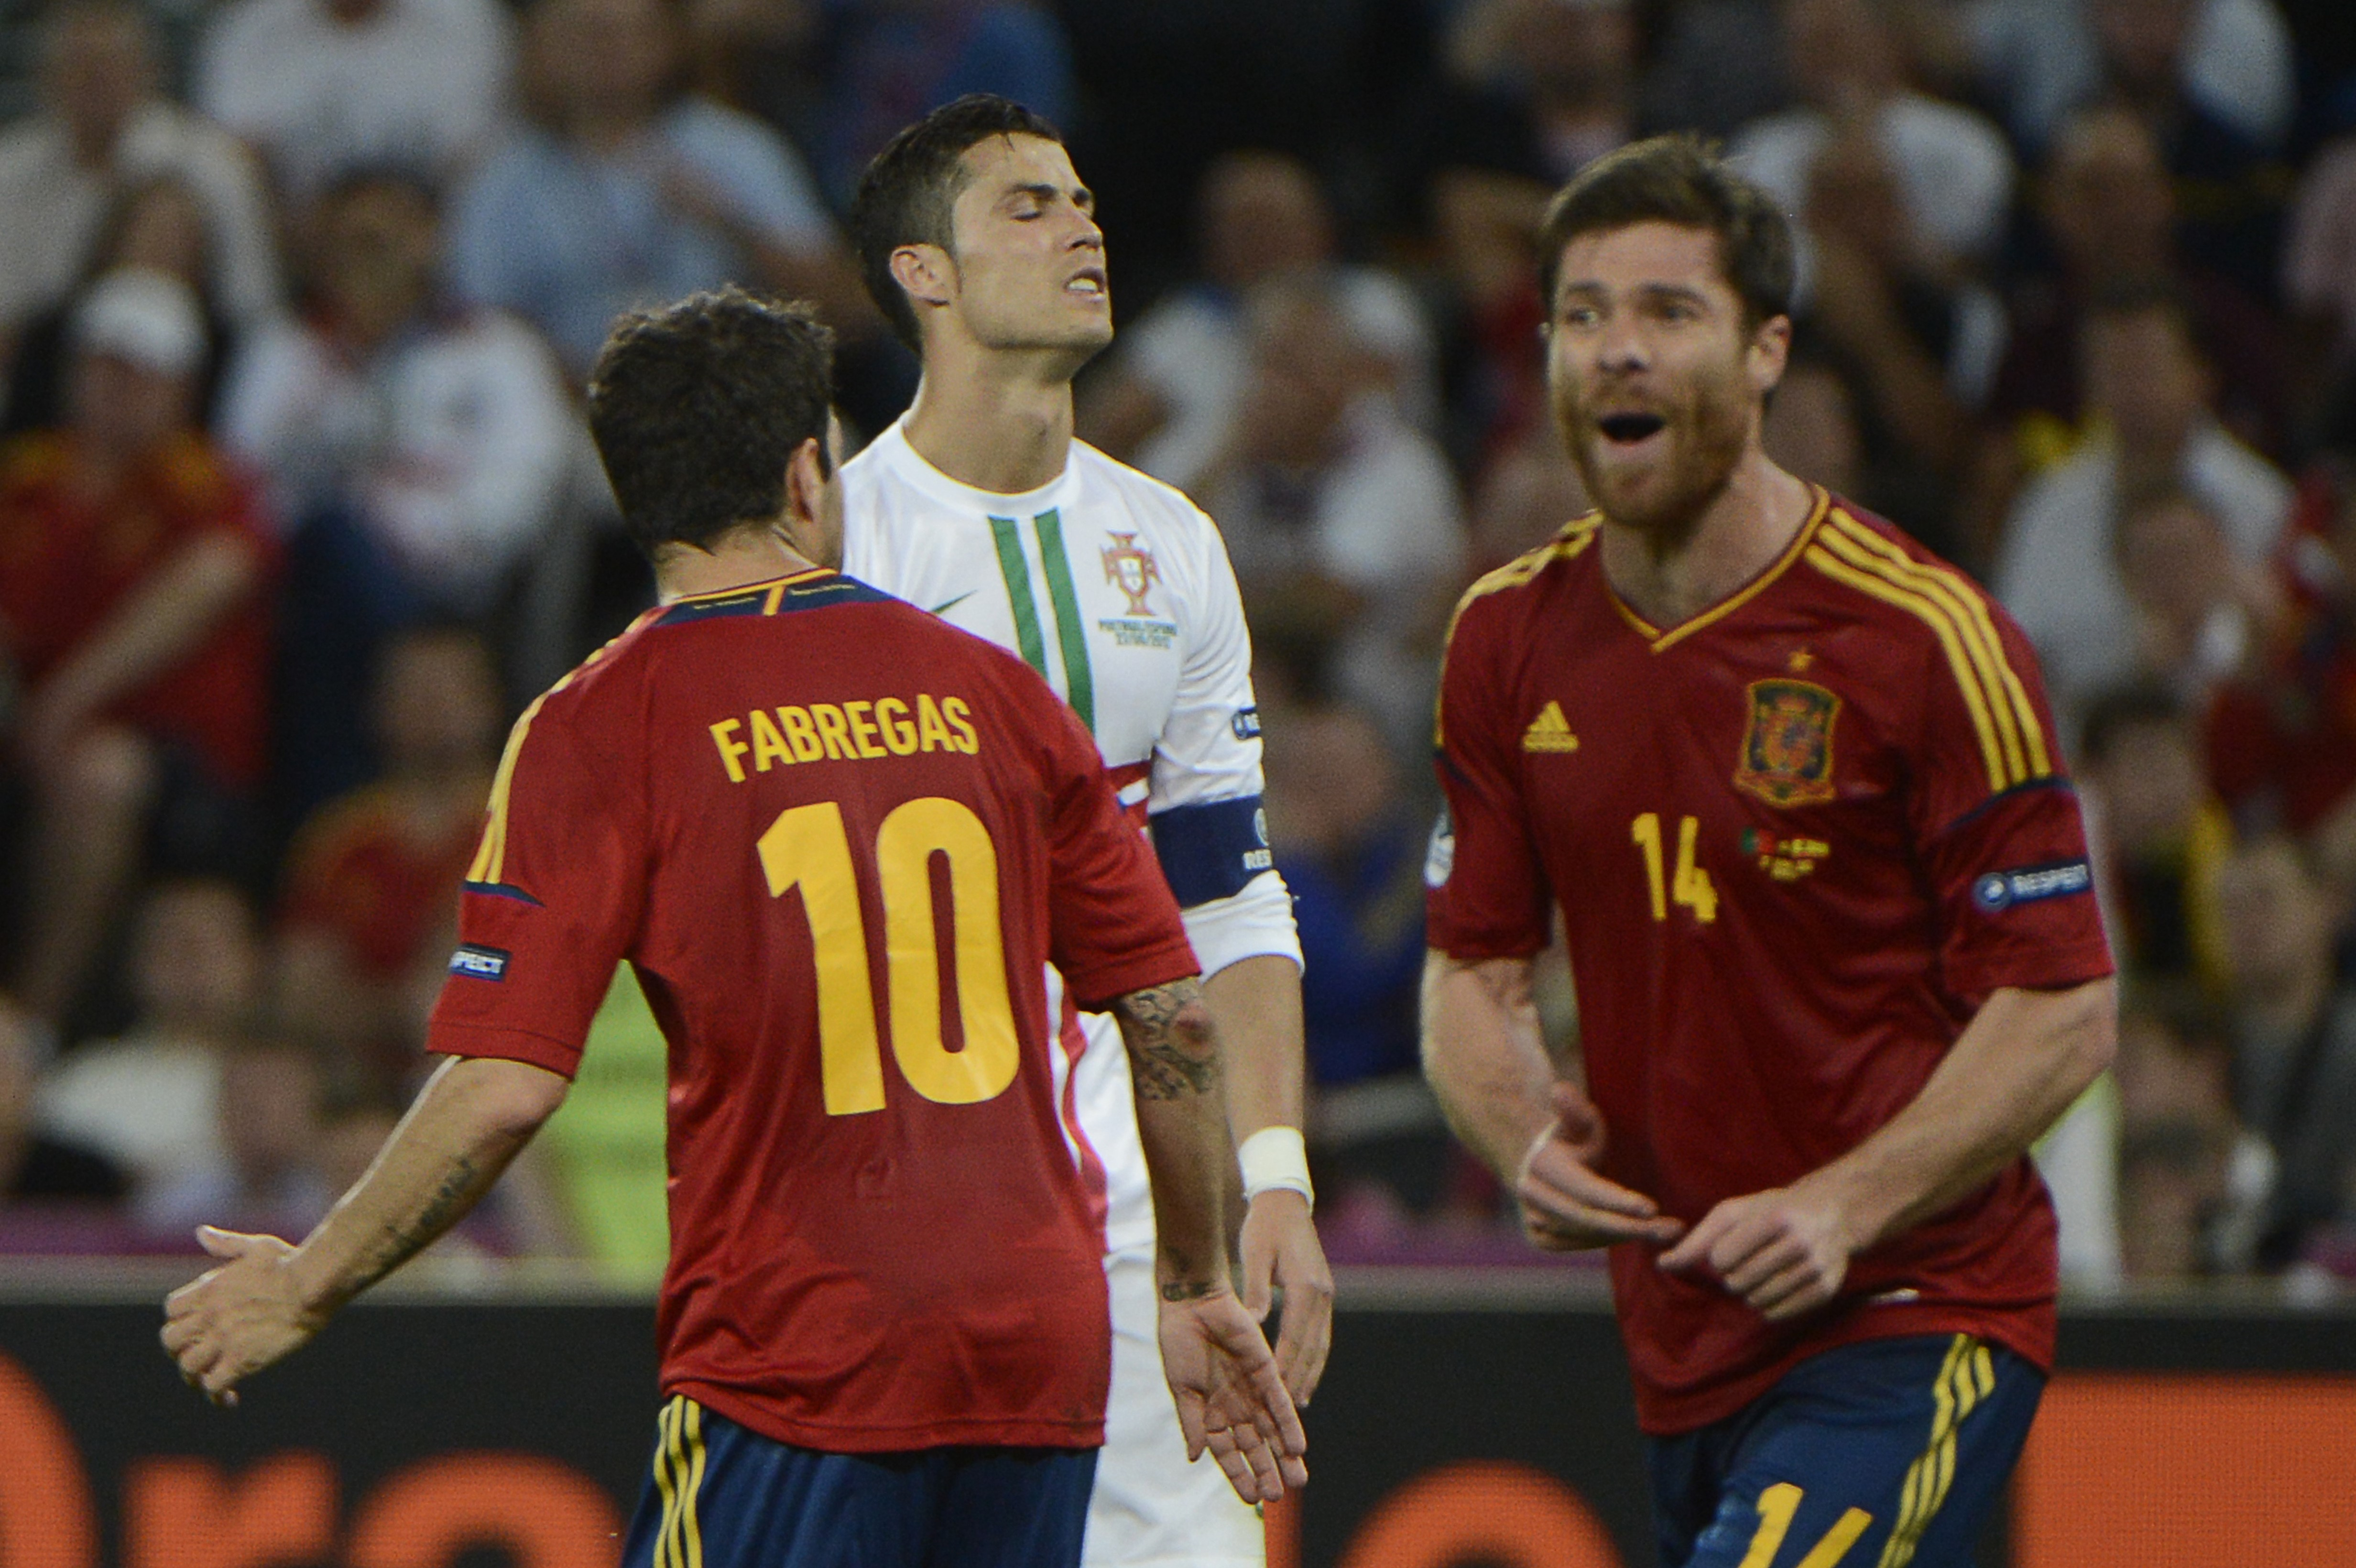 Cristiano Ronaldo (C) Cesc Fabregas and Xabi Alonso (R) during the Euro 2012 semi-final match Portugal vs Spain on June 27, 2012 at the Donbass Arena in Donetsk